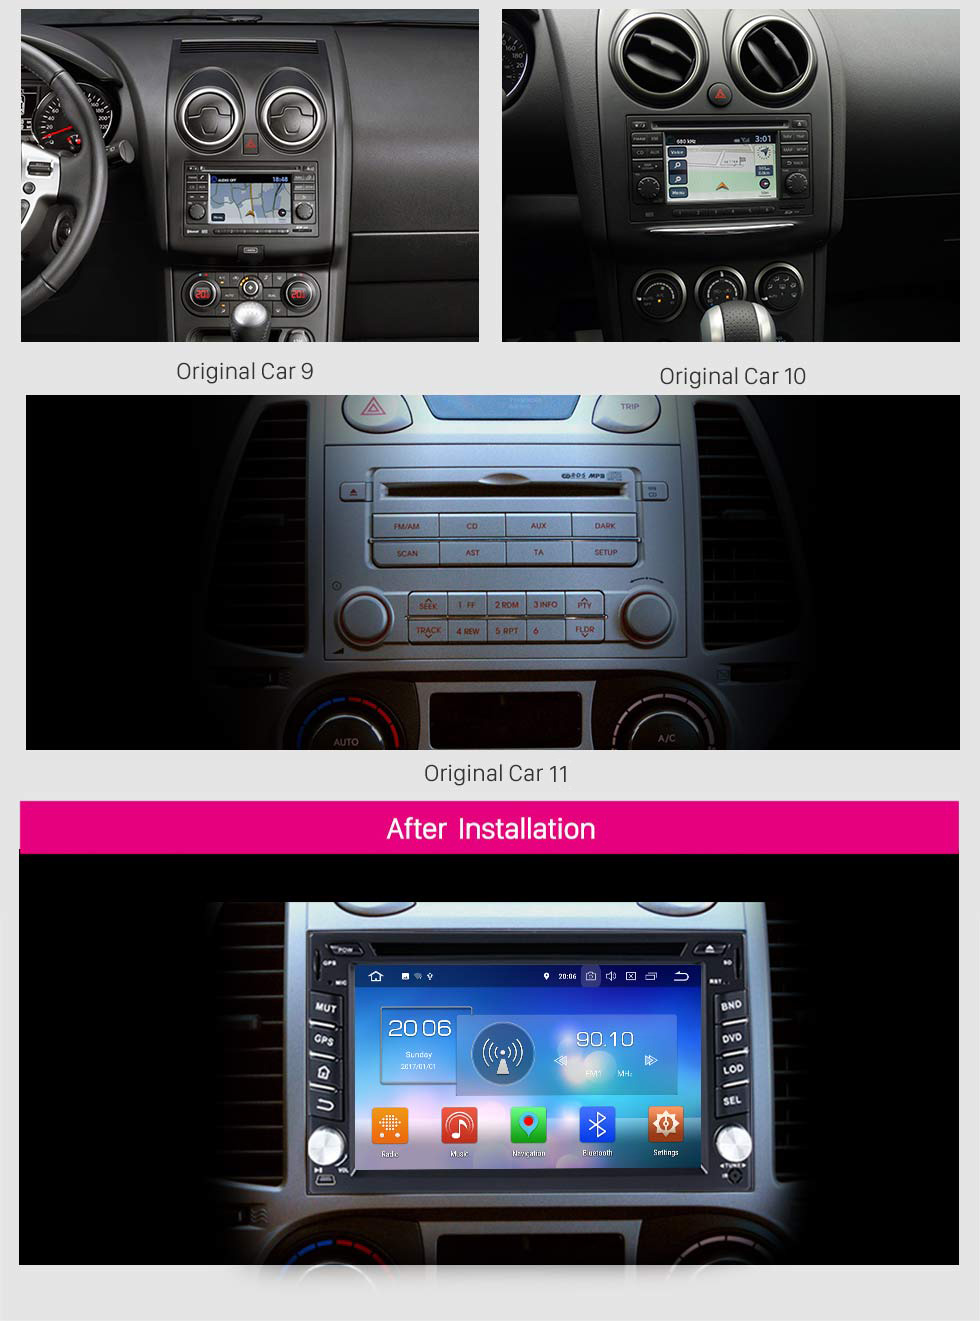 Seicane 2009 2010 2011 Nissan NV200 Android 8.0 DVD Player Radio GPS Navigation System Mirror link Touch Screen OBD2 DVR TV 3G WIFI Bluetooth USB SD Rearview Camera 1080P Video Steering Wheel Control